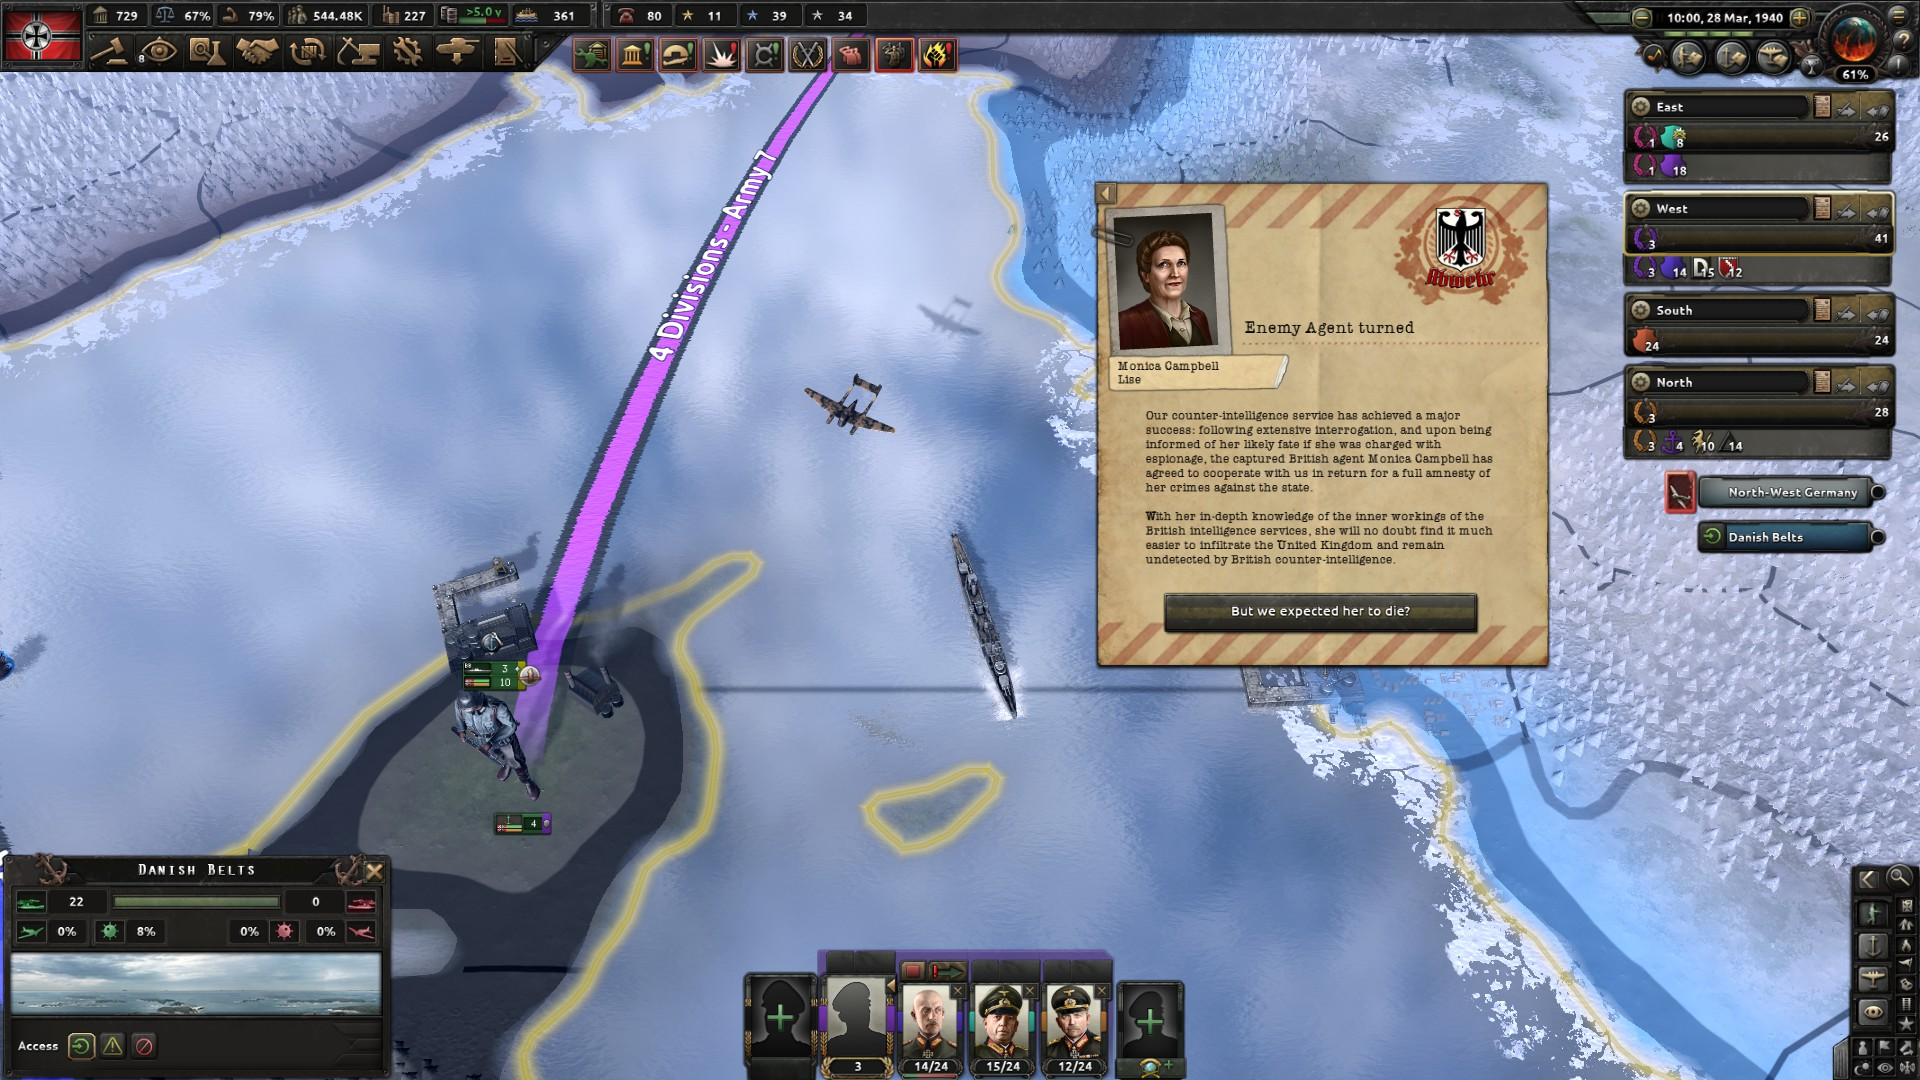 Hearts of Iron IV La Resistance download torrent RePack from xatab 5